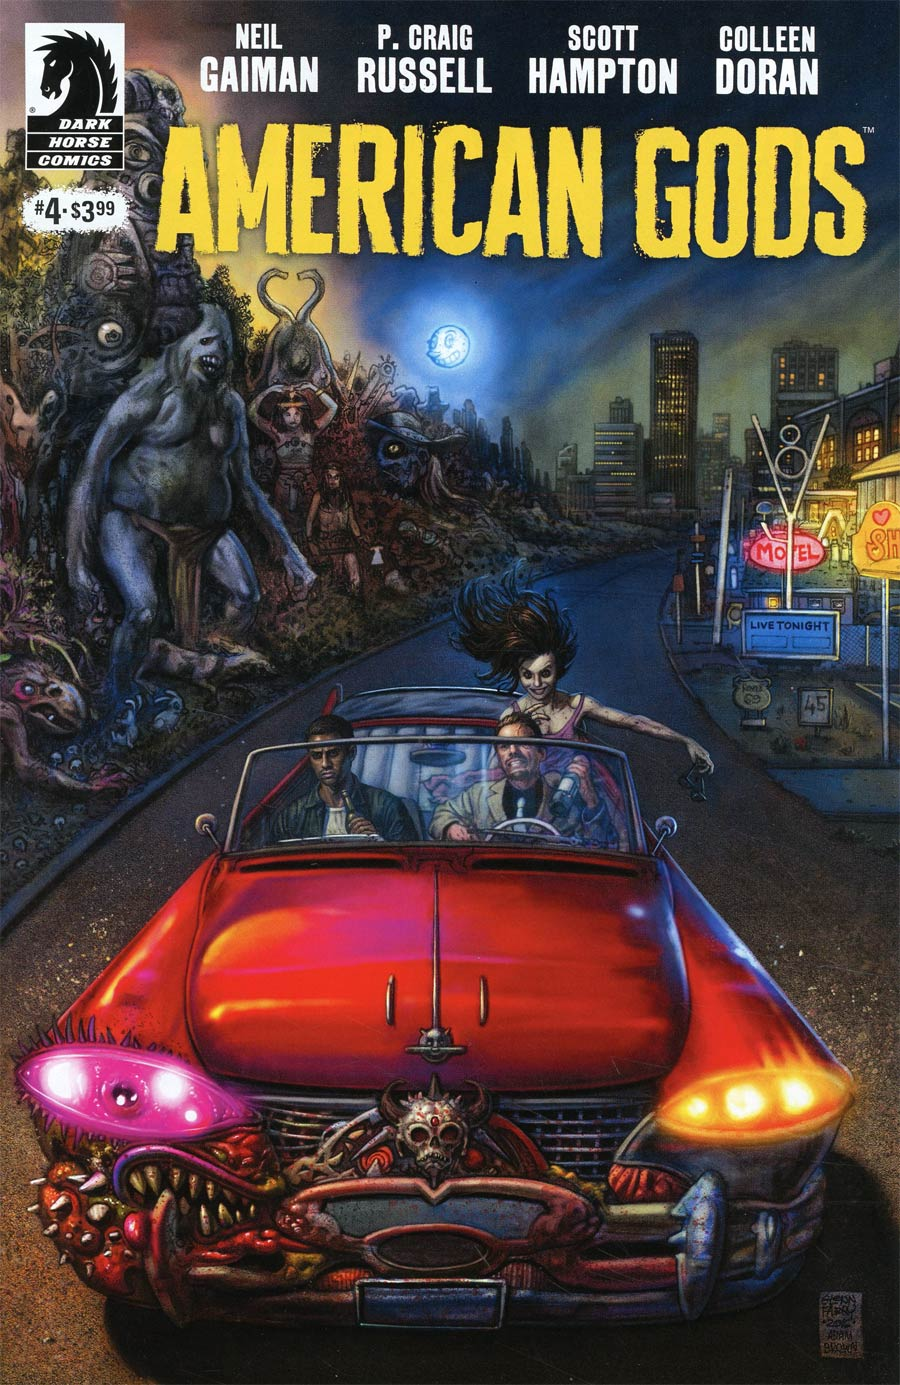 American Gods Shadows #4 Cover A Regular Glenn Fabry Cover